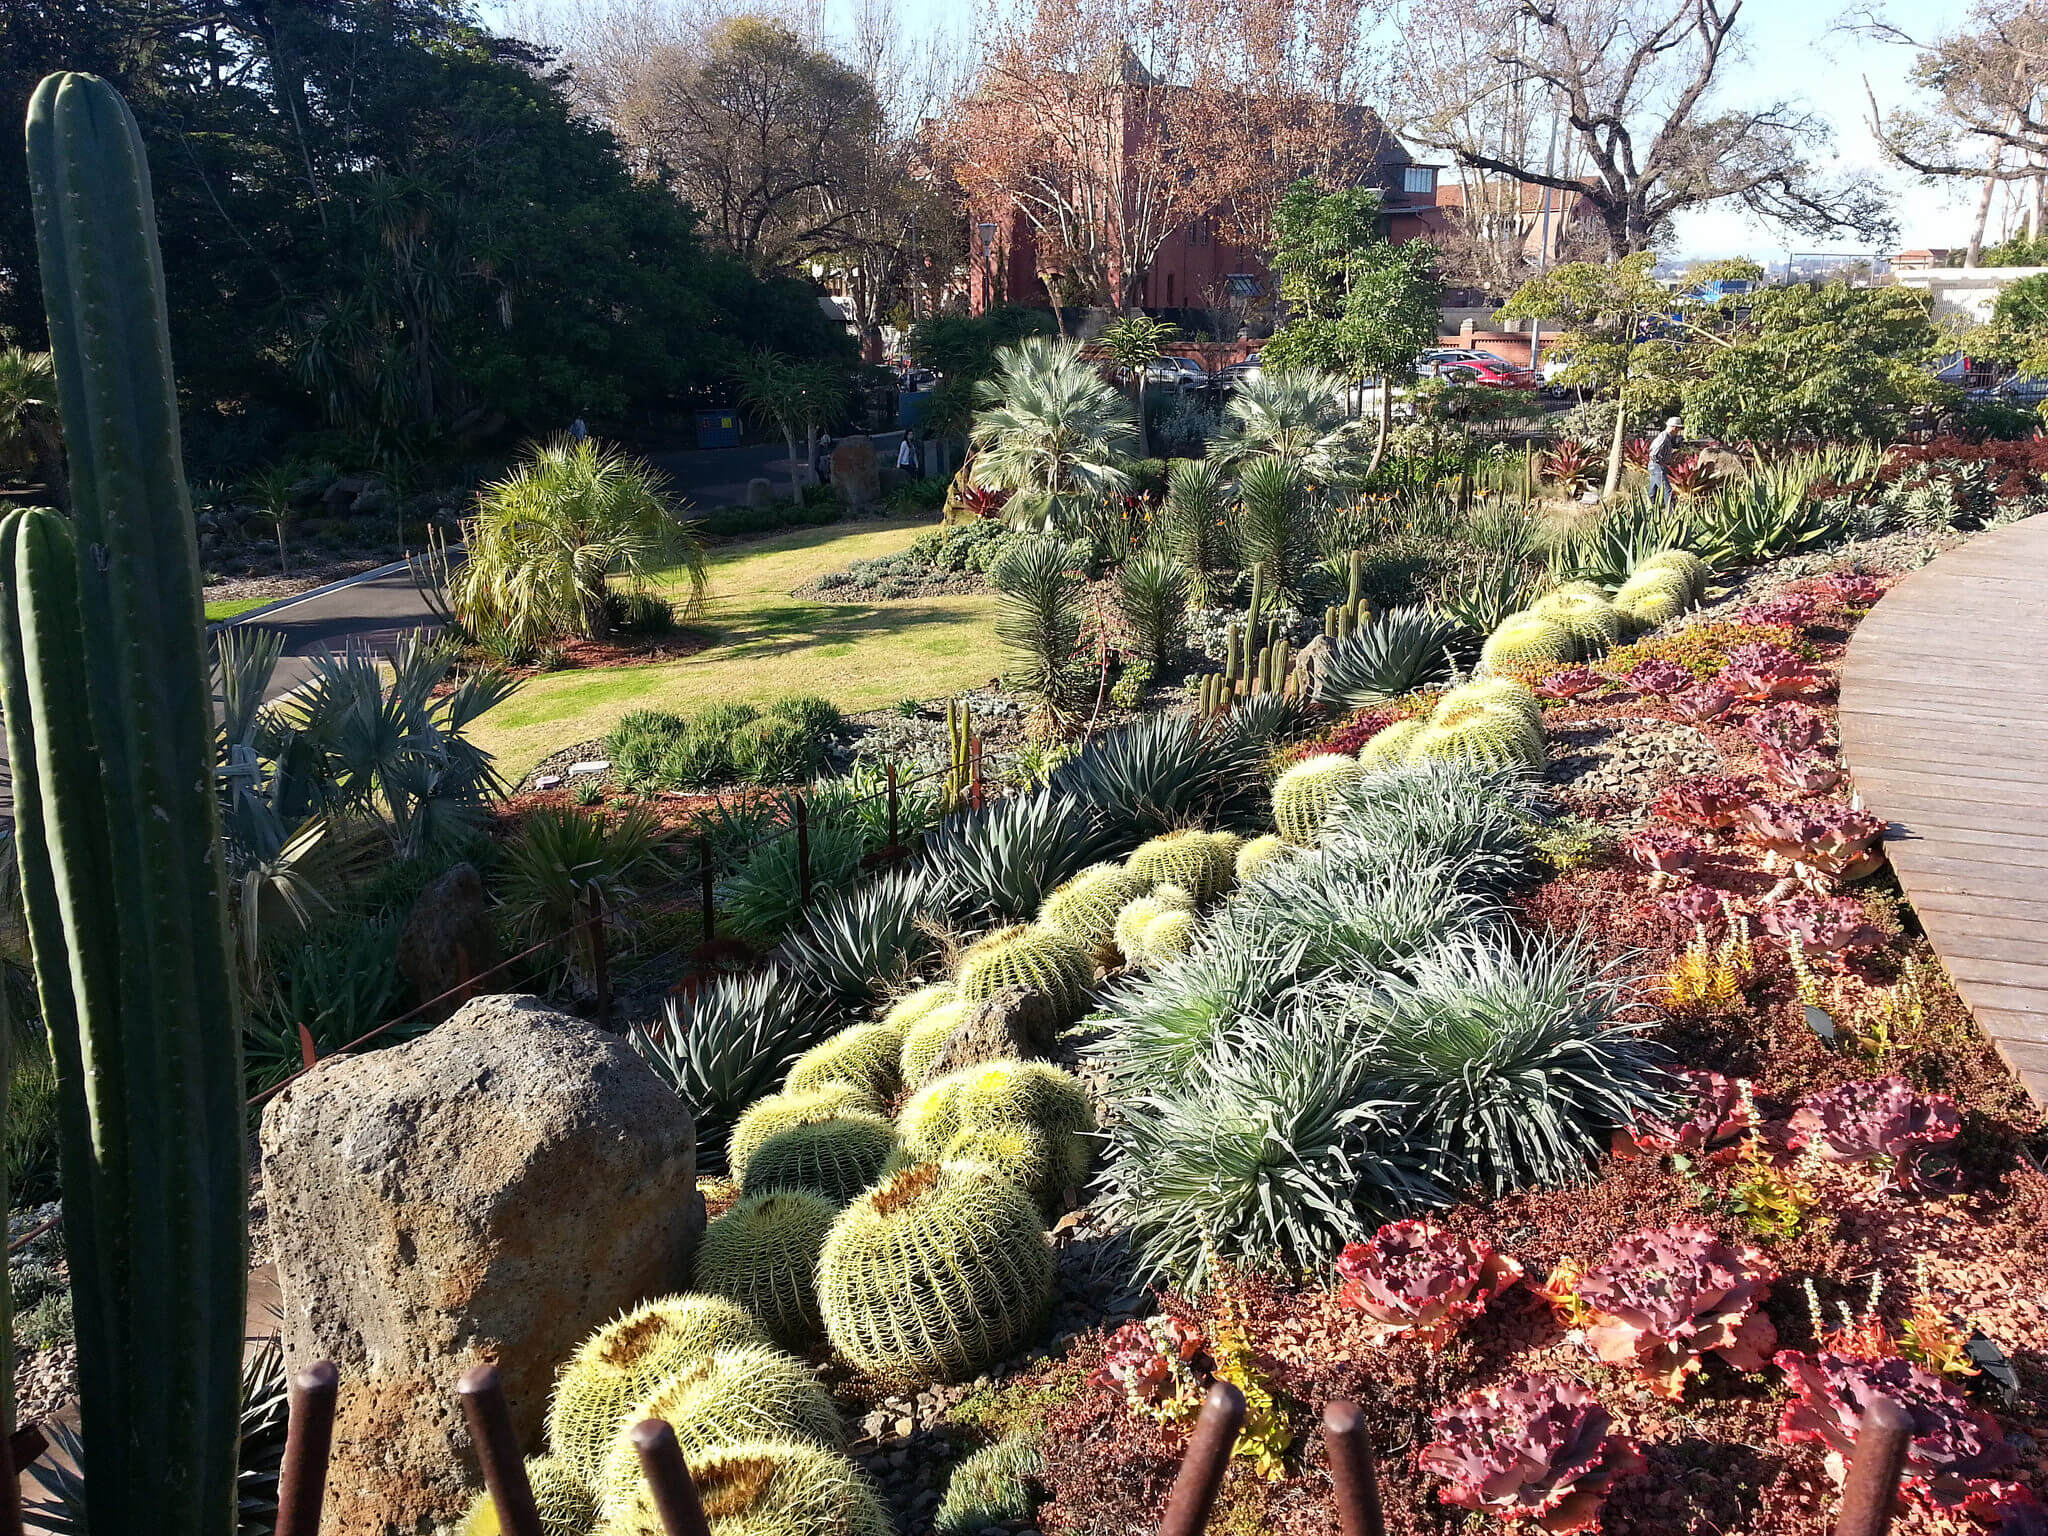 On a hillside, in rich red dirt, this combination of round and spiny cacti delivers a desert appeal, but still provide ample green to liven up the space.